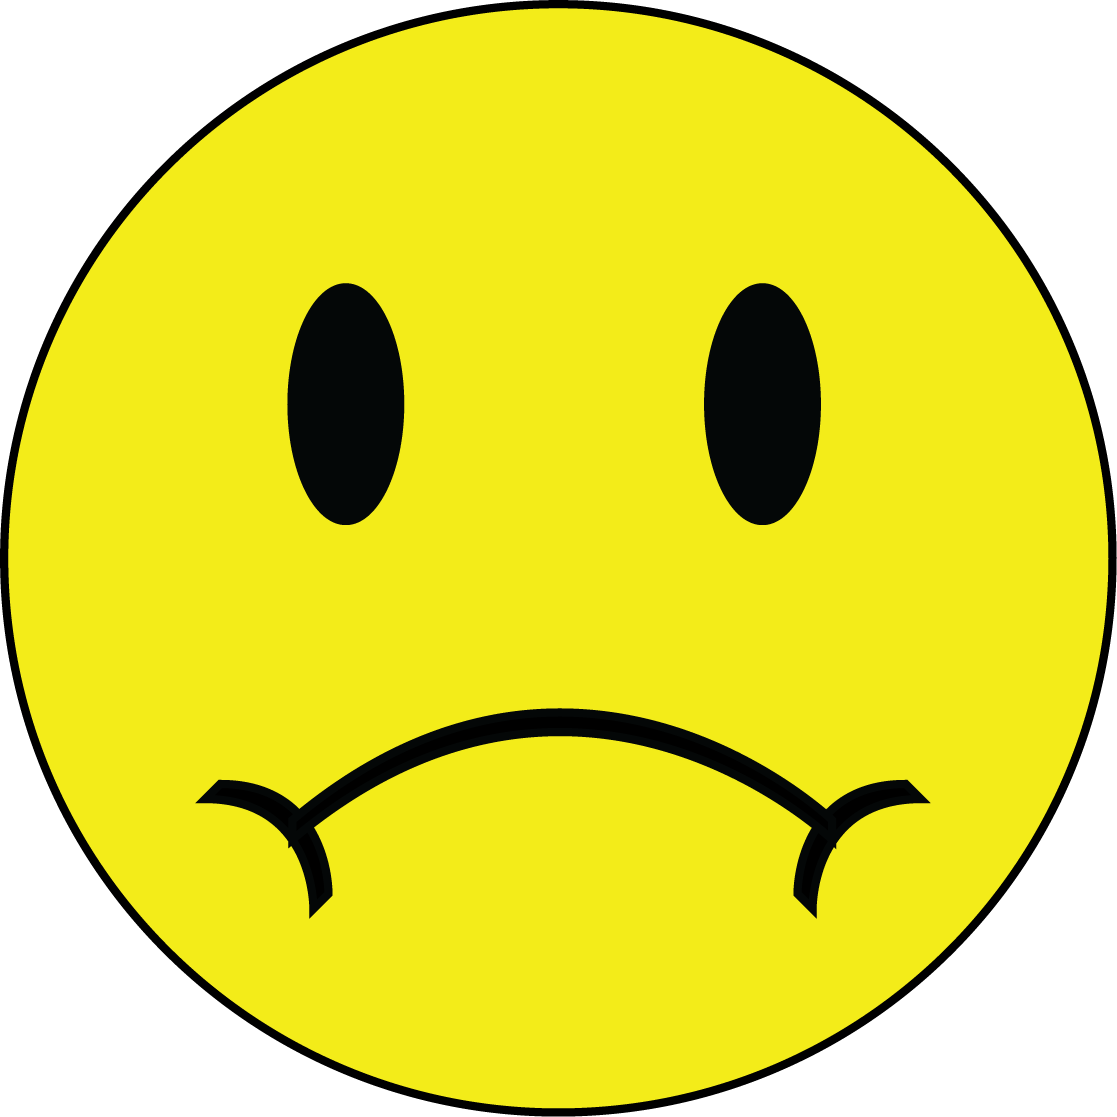 Frown to smile clipart picture freeuse 85+ Frown Clipart   ClipartLook picture freeuse